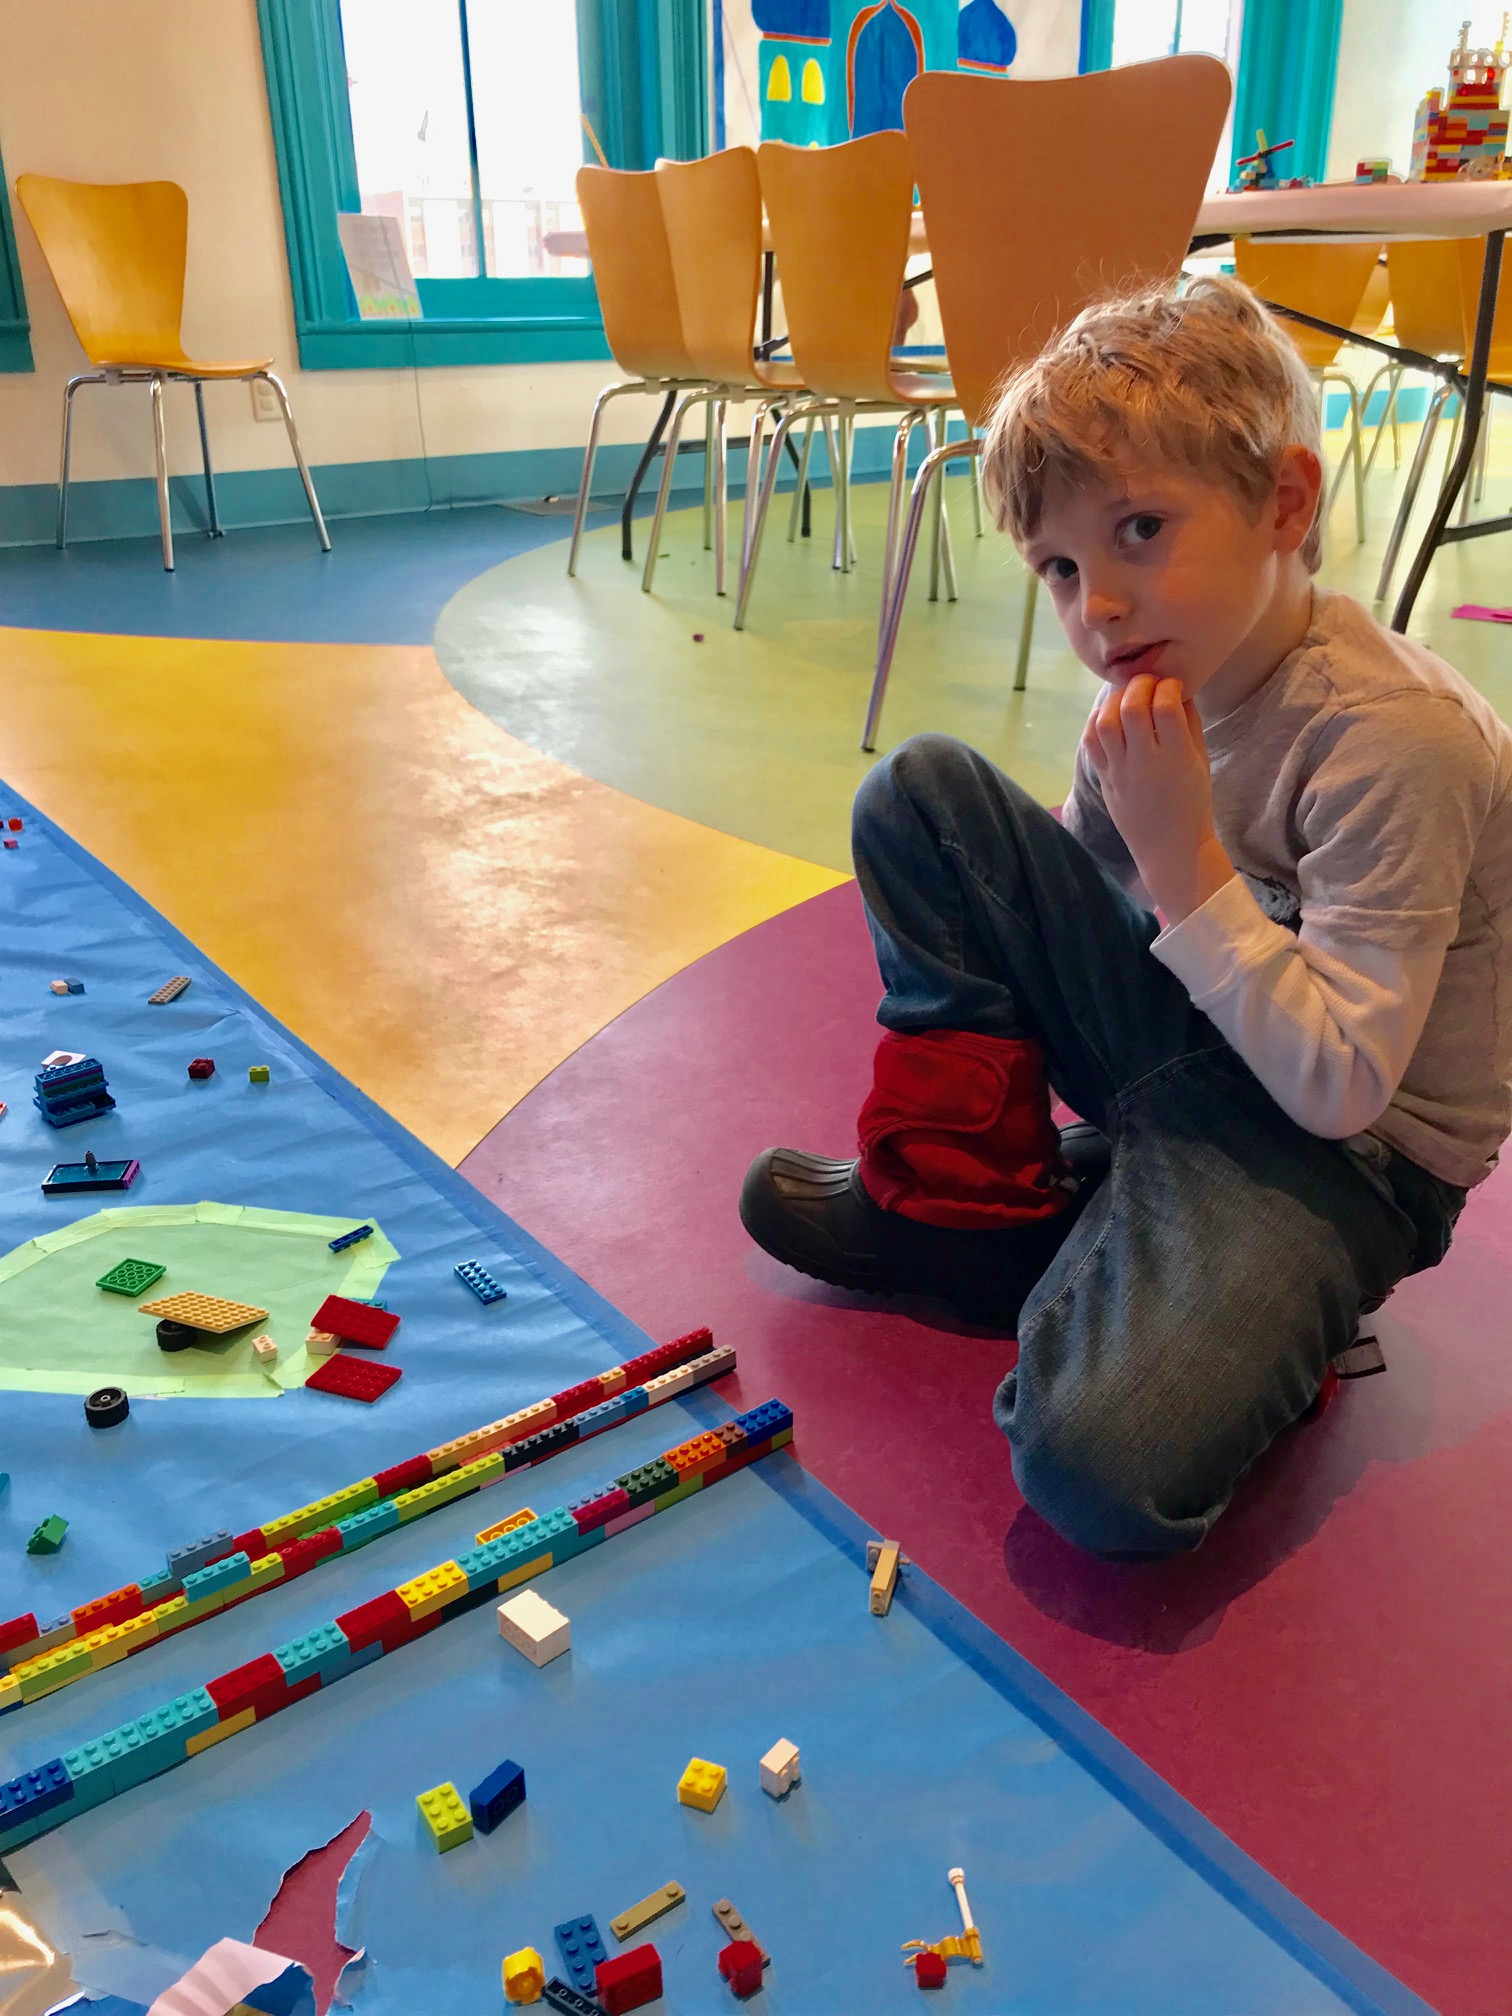 A young boy playing with Legos at a children museum